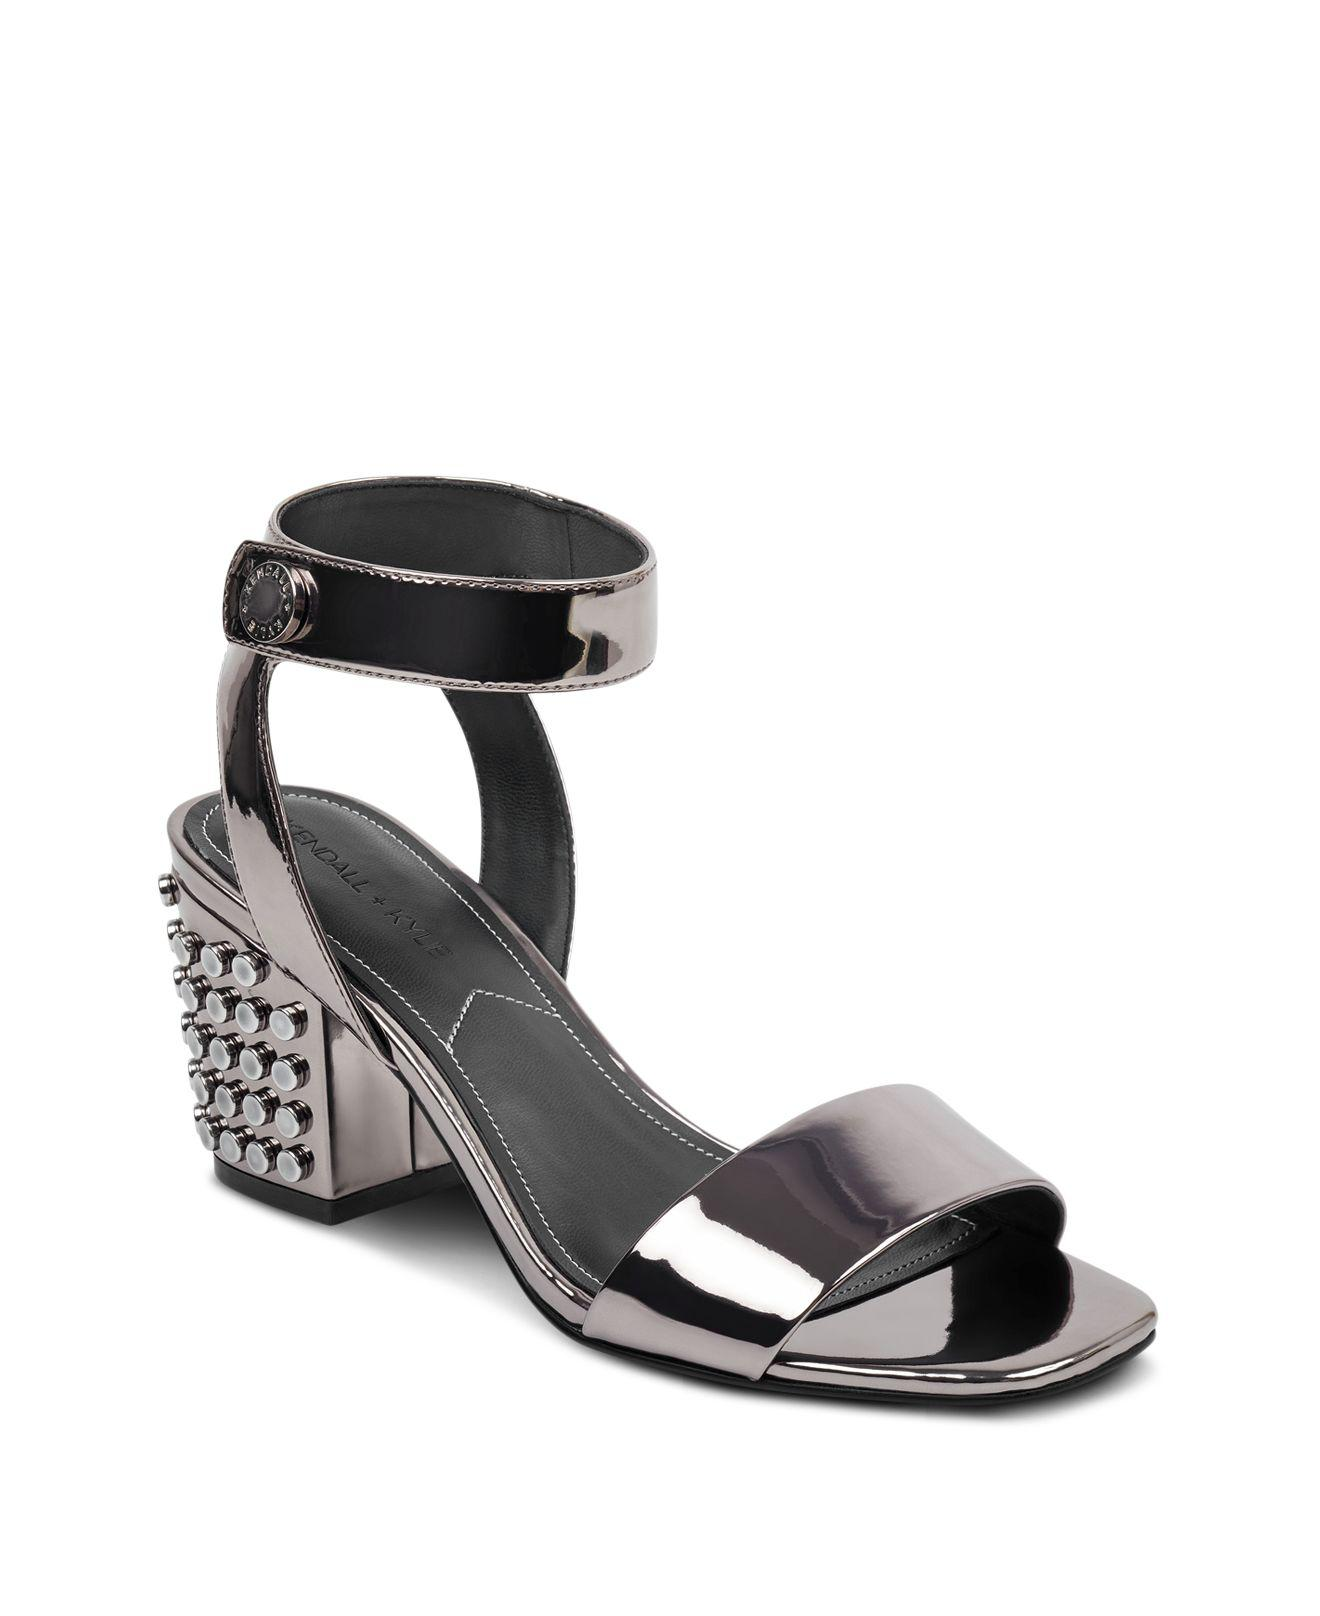 Kendall And Kylie Women's Sophie2 Studded Patent Leather Block Heel Sandals qIrld95Fz1